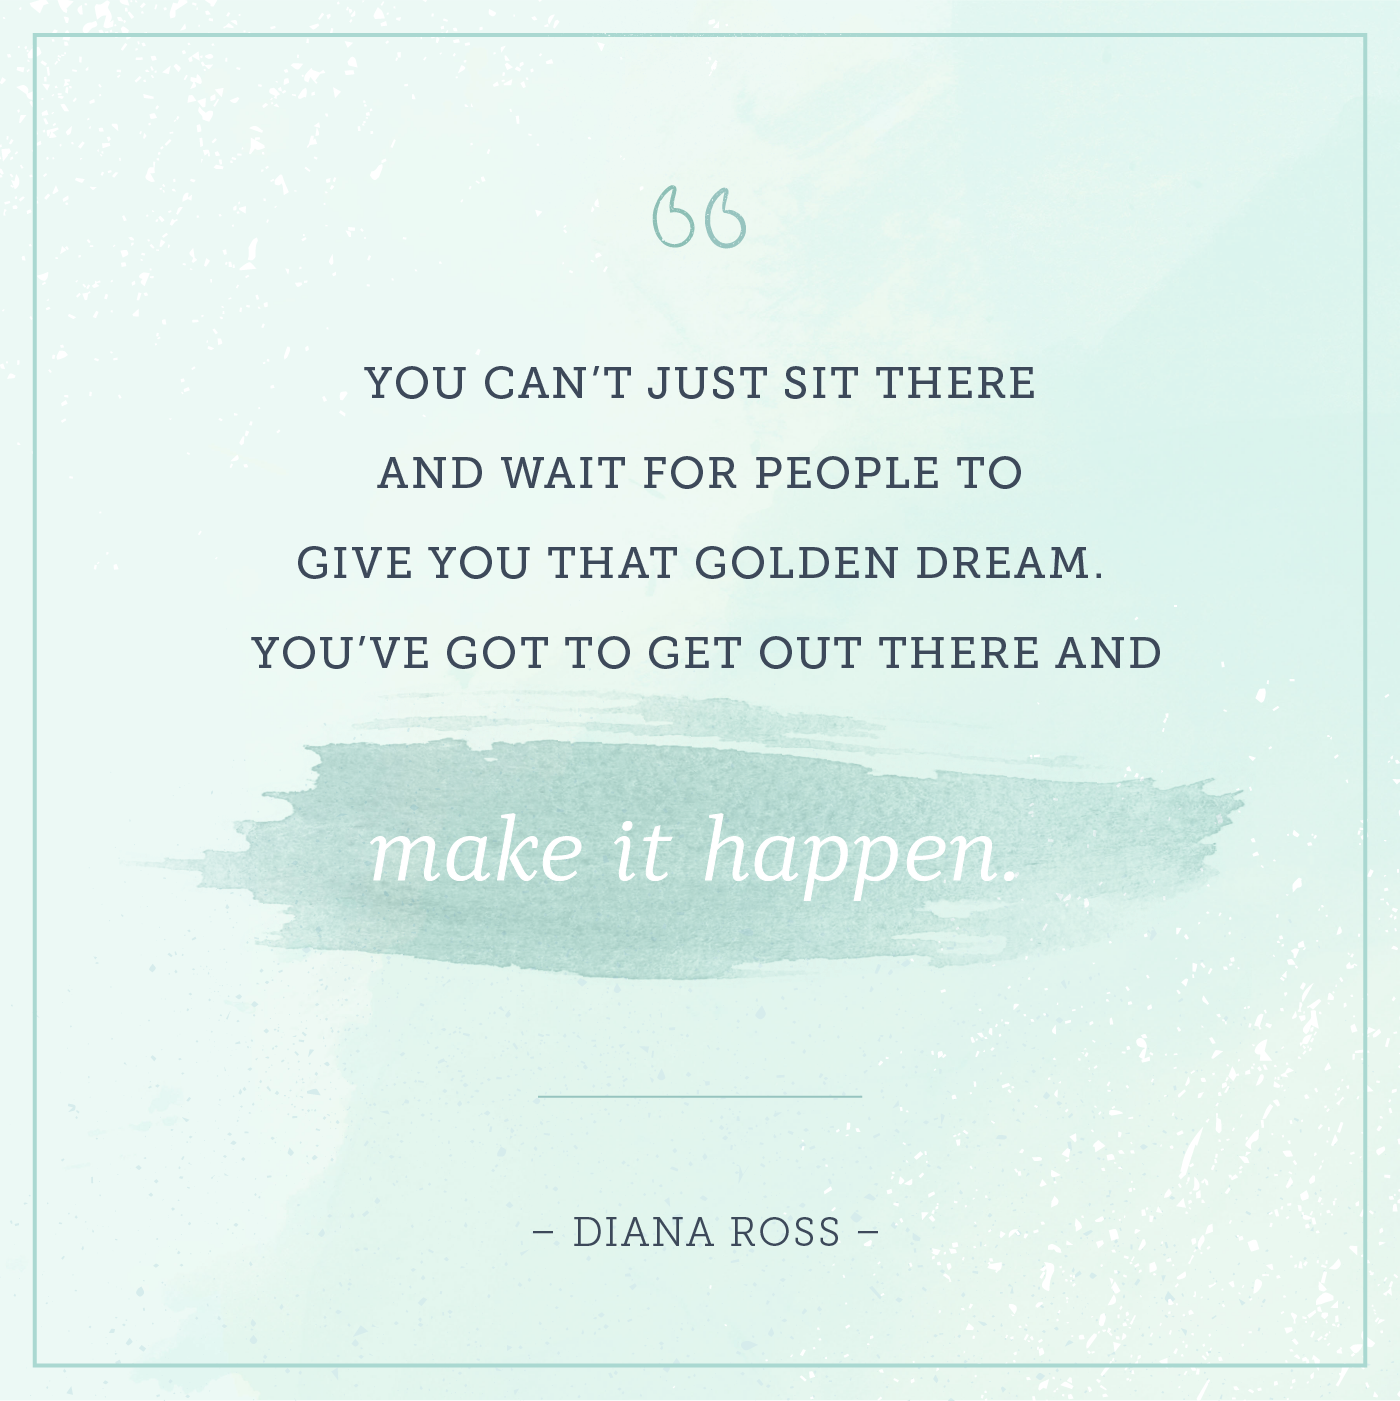 make it happen diana ross